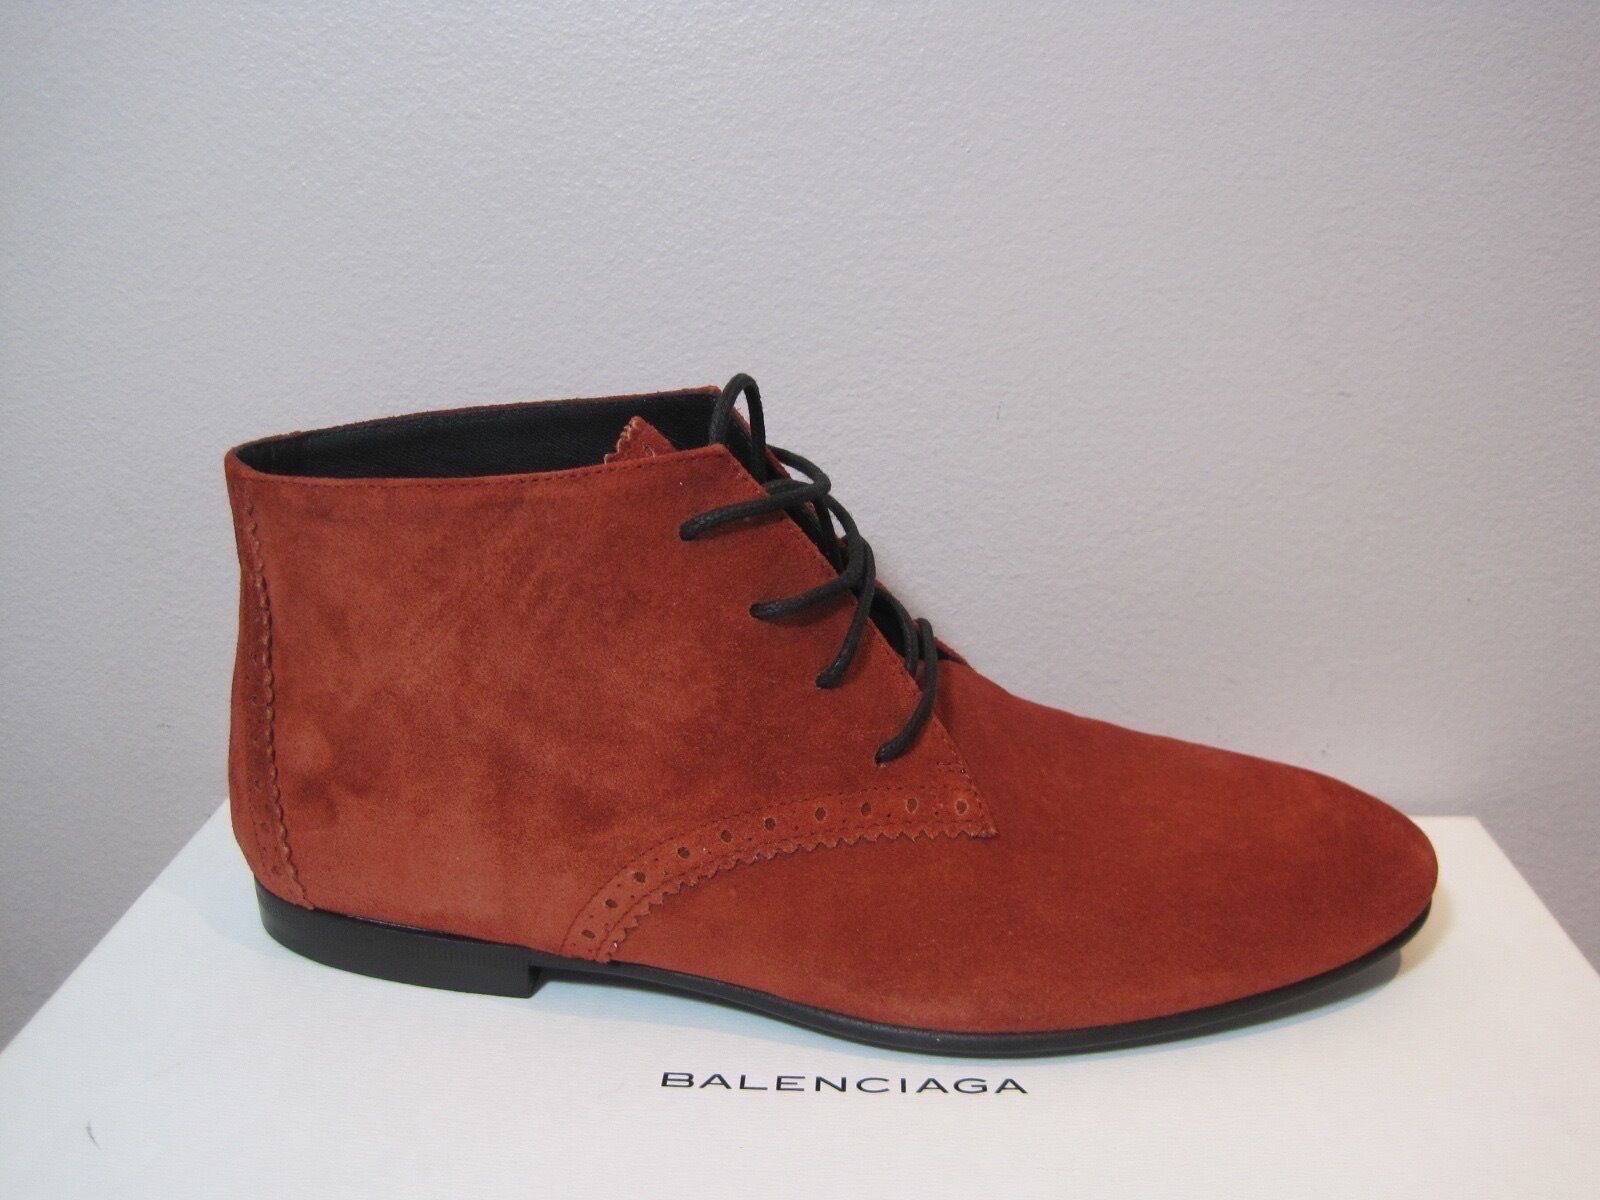 Balenciaga Arena Brick Suede Leather Oxford Boots Booties Shoes 665 38.5 8.5